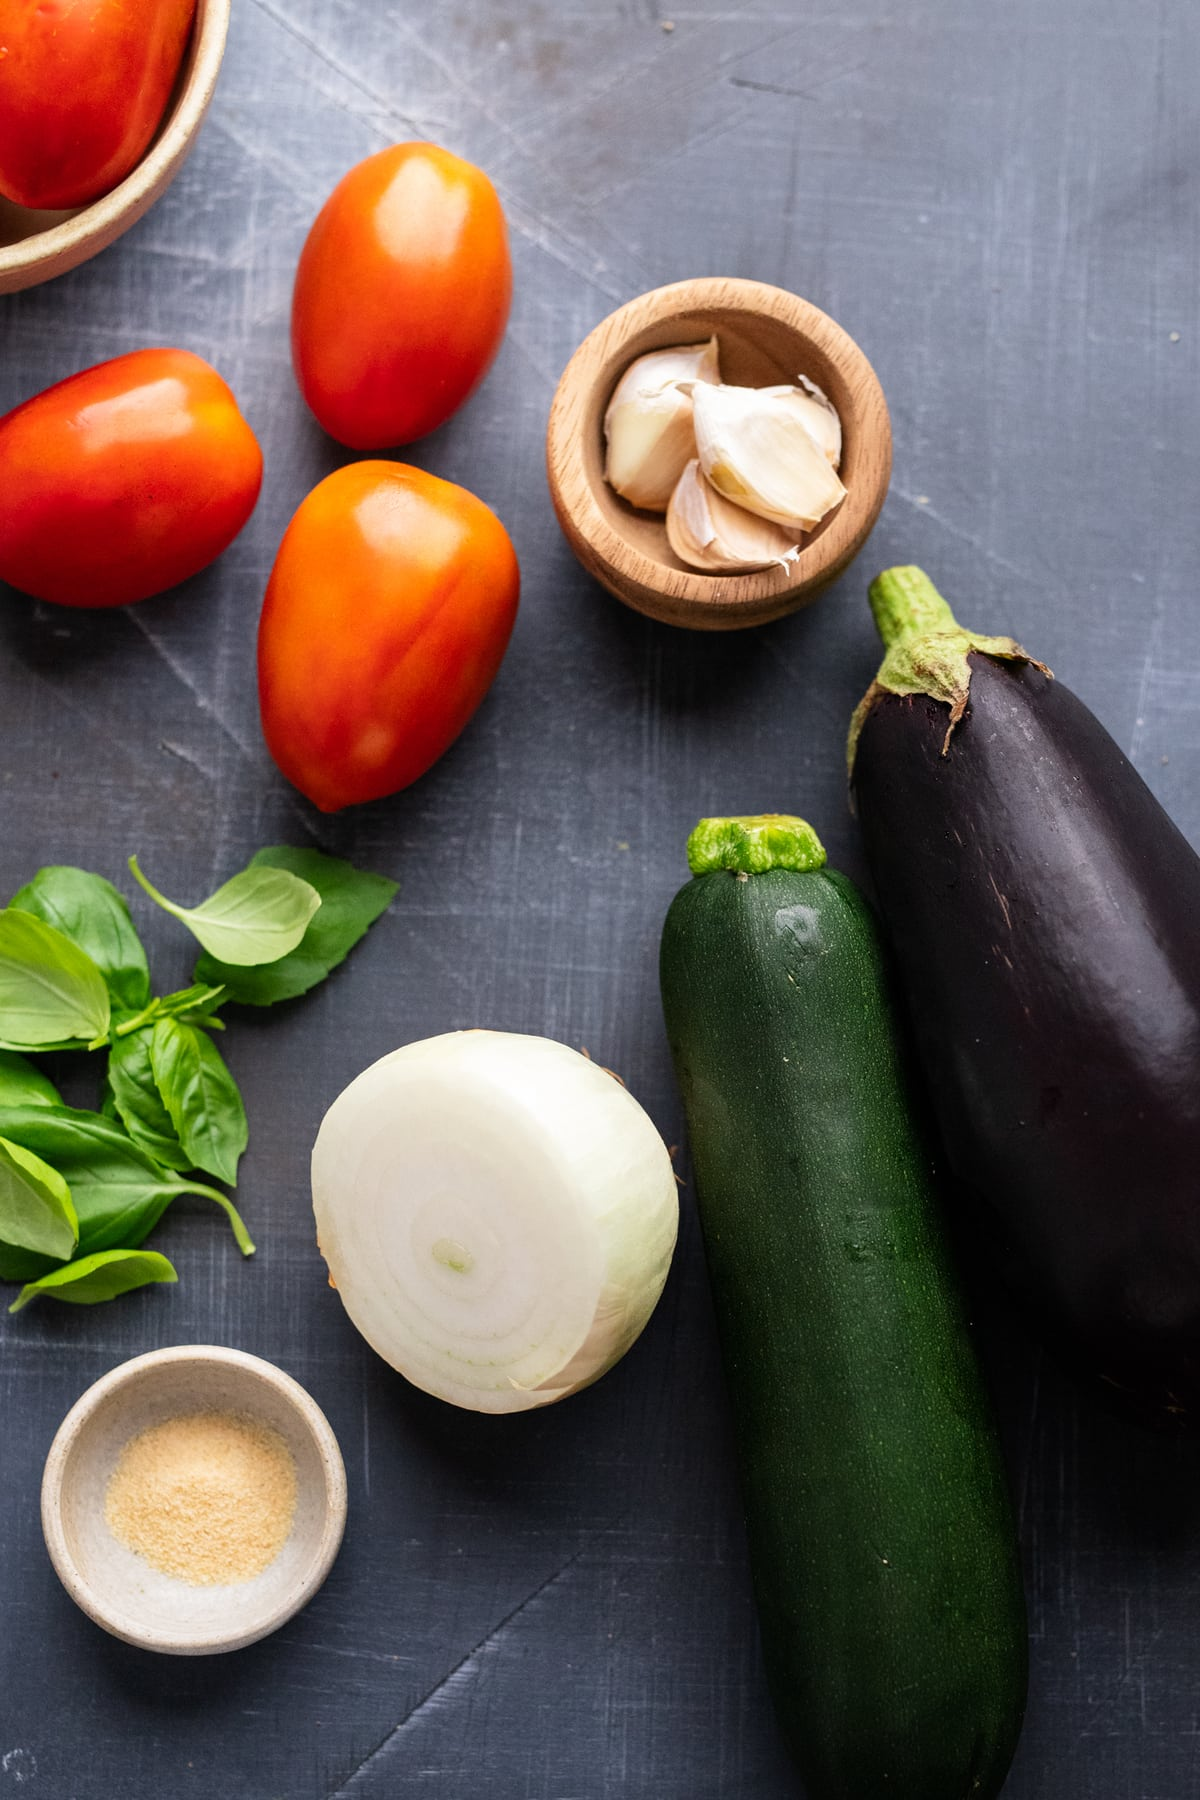 Ingredients for eggplant ratatouille arranged on a gray background.